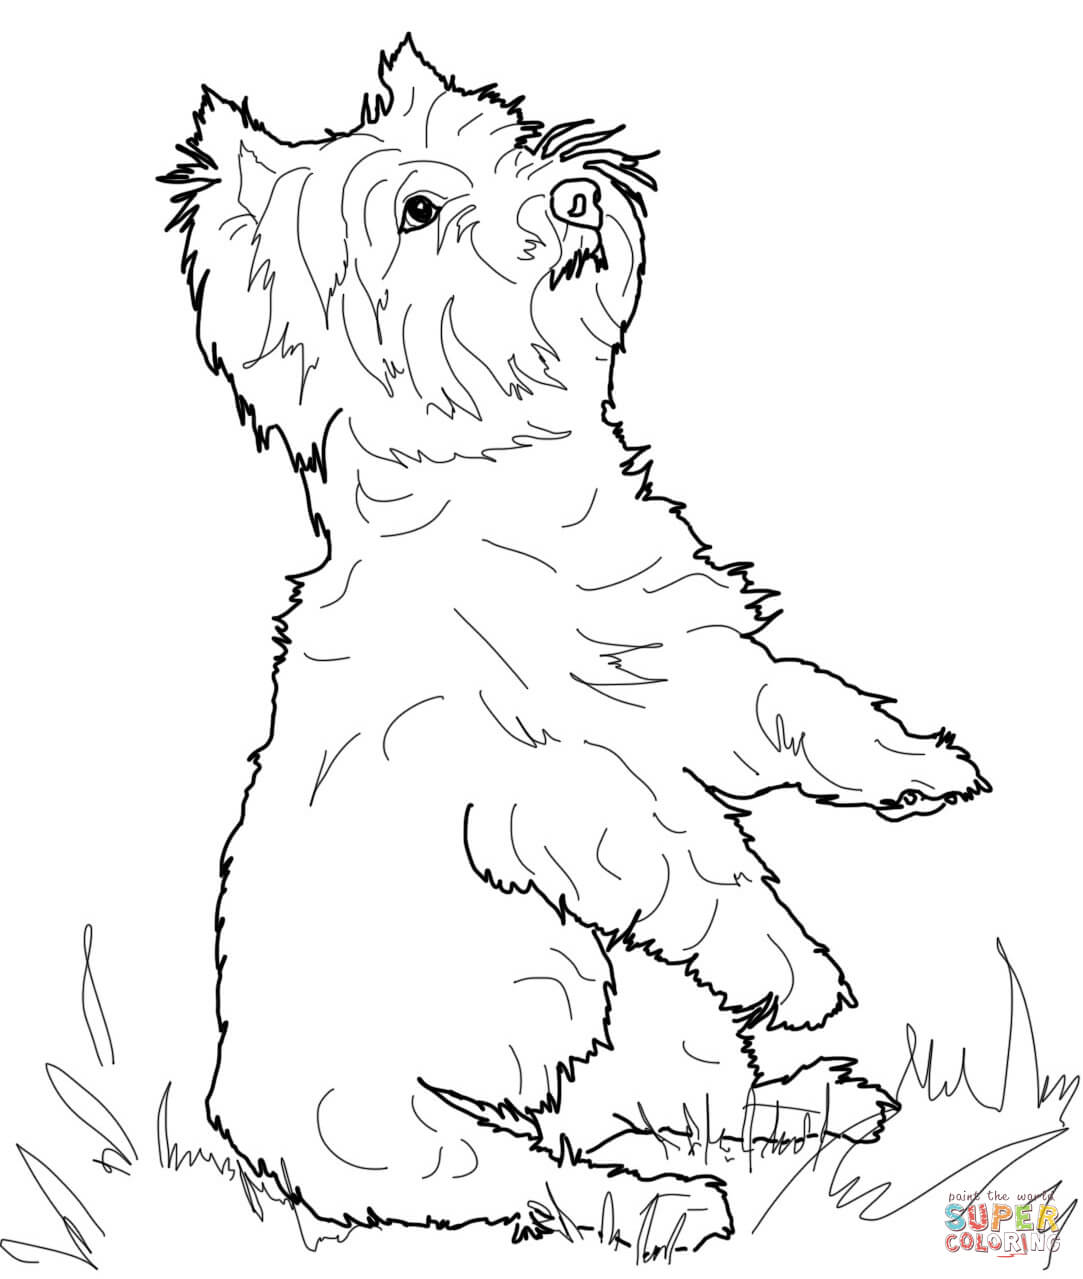 yorkie coloring pages yorkie coloring pages line art free printable coloring pages yorkie pages coloring